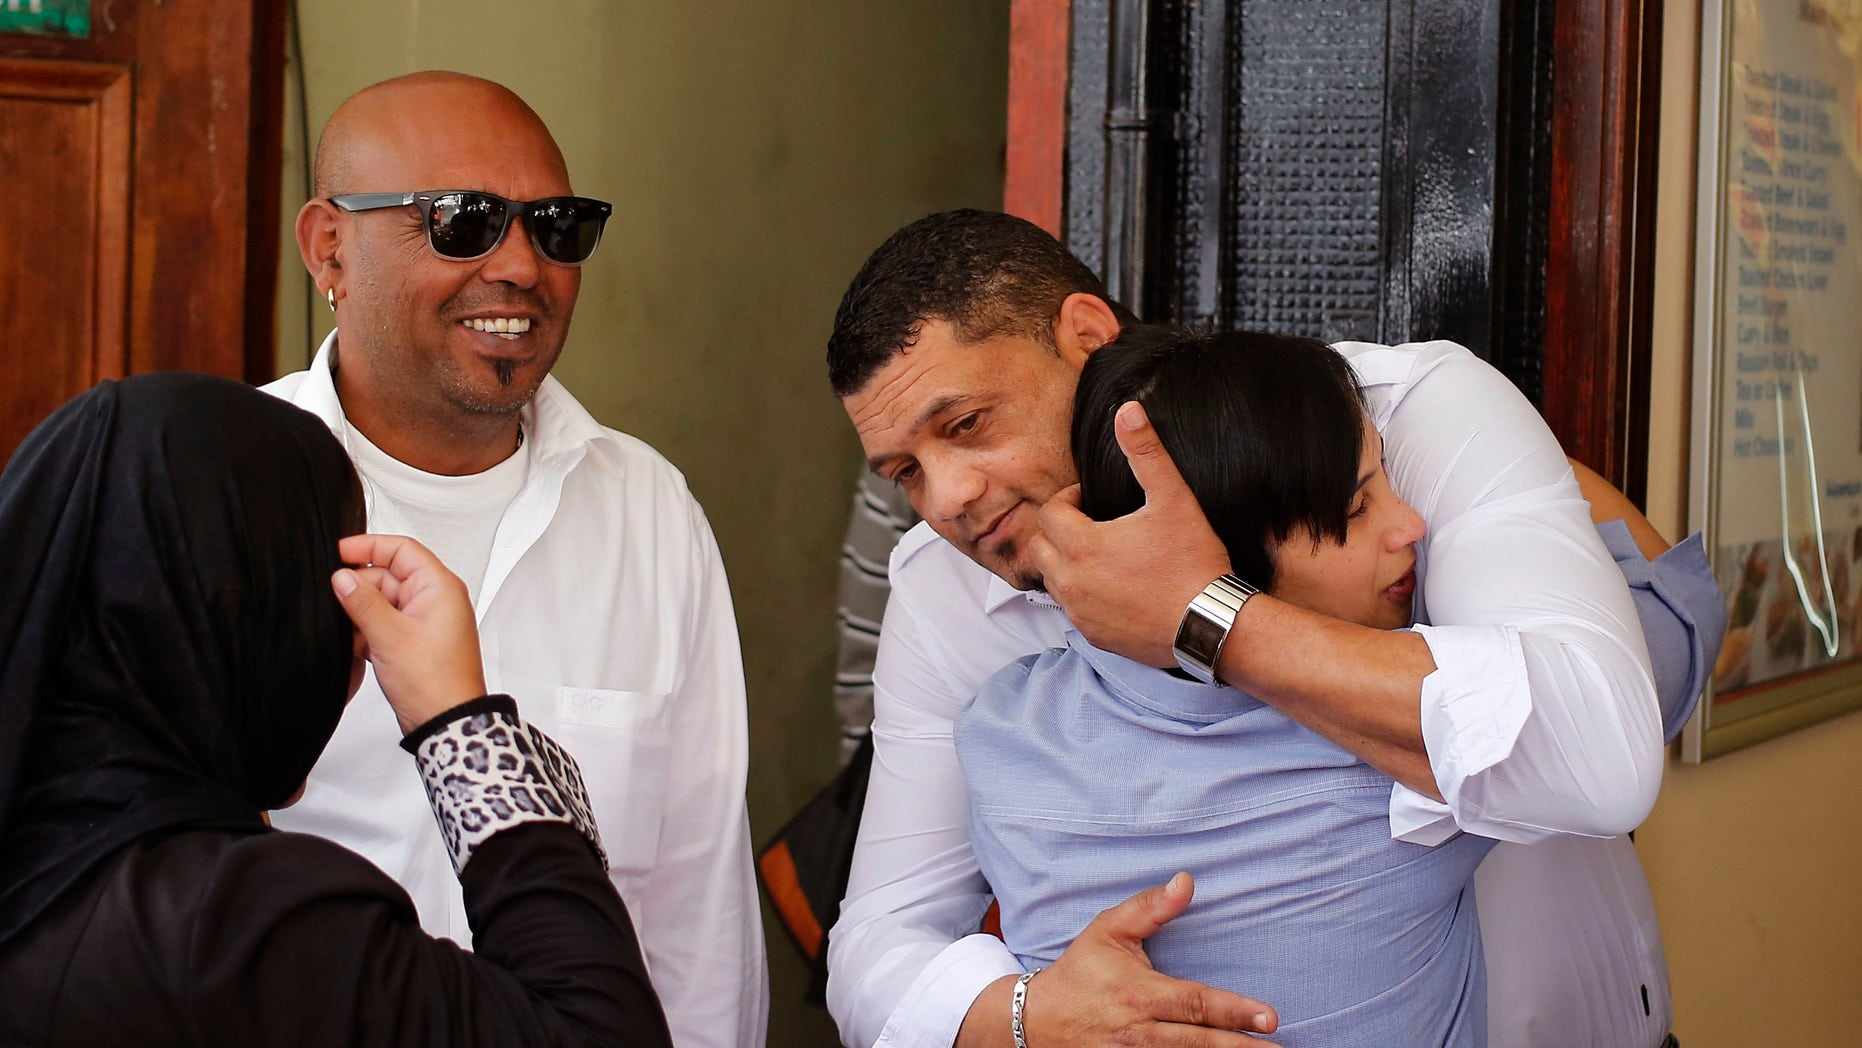 Morne and Celeste Nurse, right, the biological parents of the kidnapped child Zephany Nurse, embrace each other after court proceedings in Cape Town, South Africa.